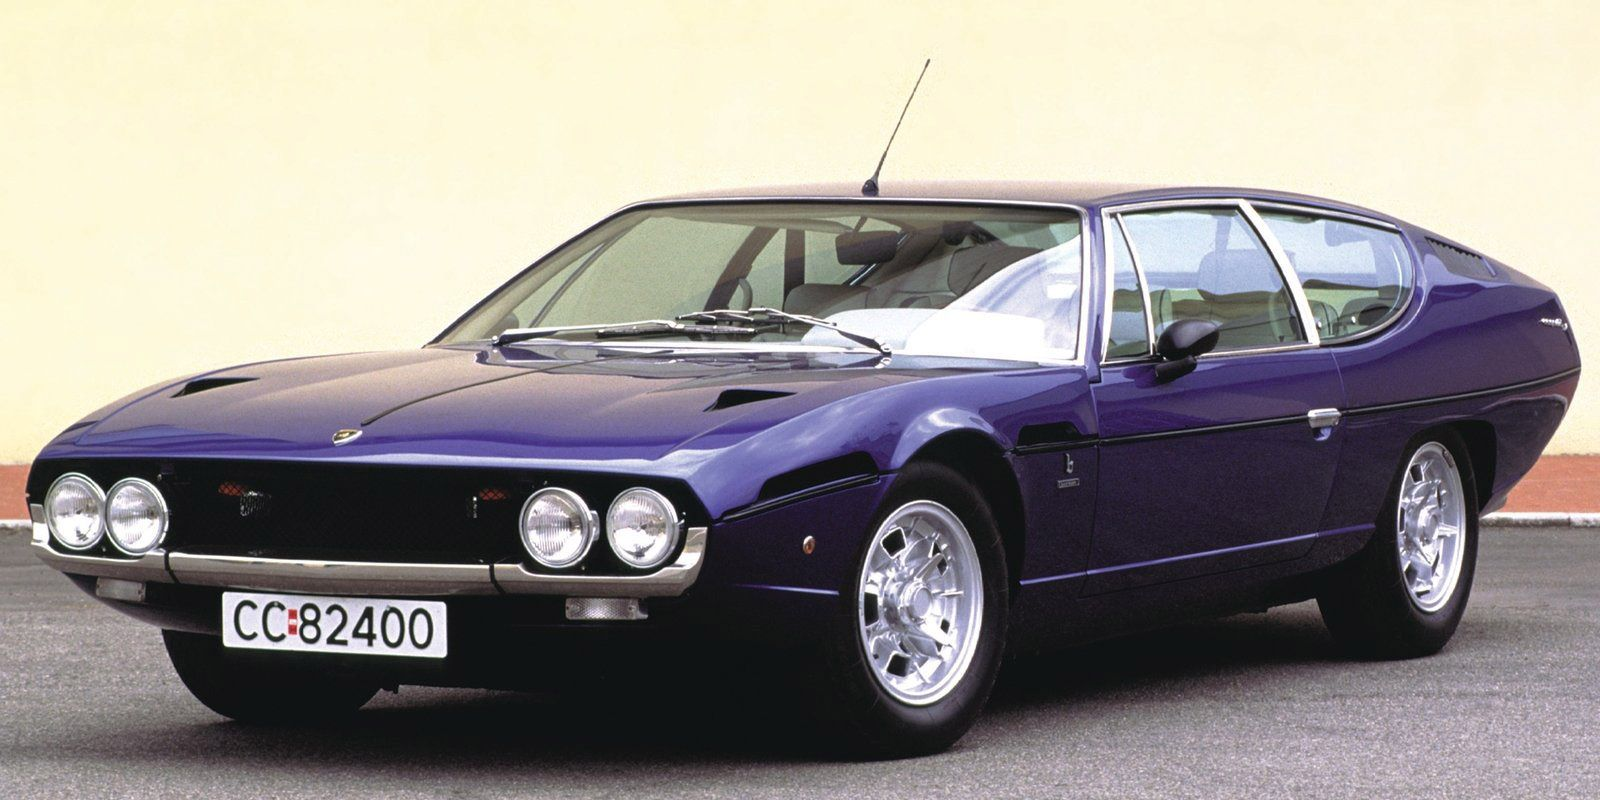 """<p>Translated from Spanish, """"espada"""" means """"sword"""", and is often used in <a href=""""http://www.carmagazine.co.uk/features/car-culture/a-load-of-bulls-a-potted-history-of-lamborghini-names/"""" target=""""_blank"""">reference to the bullfighter himself.</a> This four-seater had a 4.0 liter V12 engine that made between 325 and 350 bhp.</p>"""